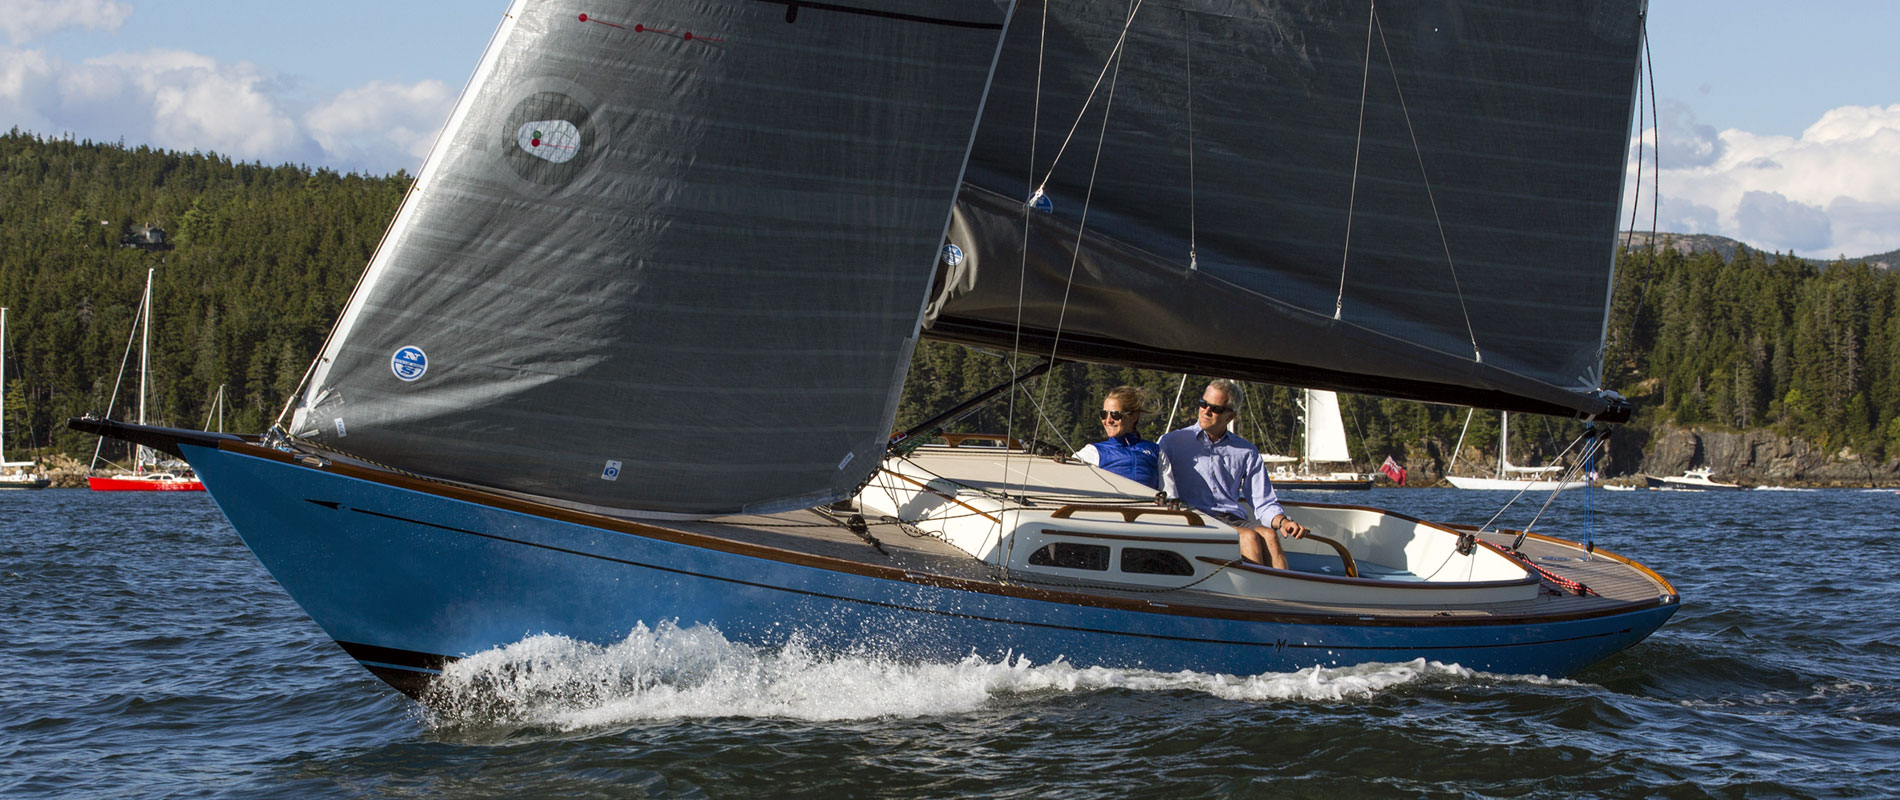 Cuyler and Cindy sail a new M29x in Maine.